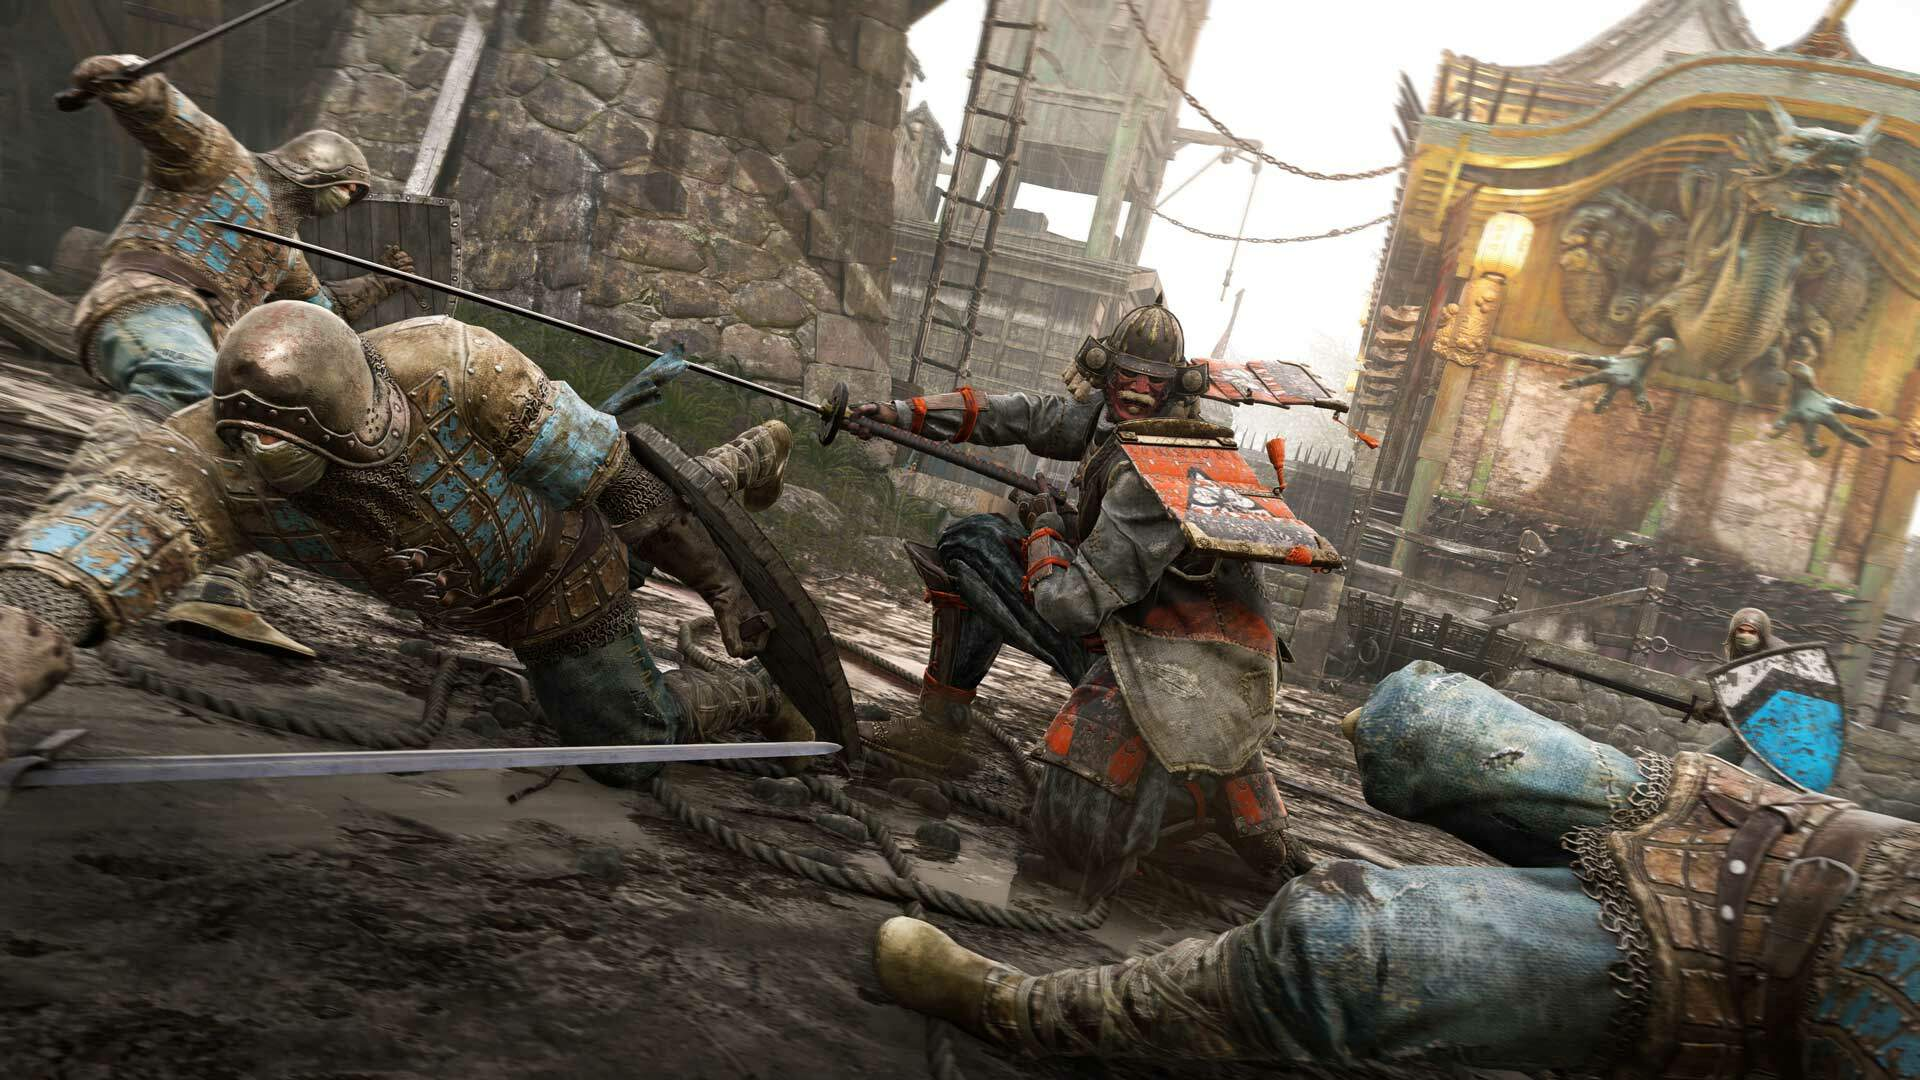 For Honor Gets New Patch, Compensation Offered to Players